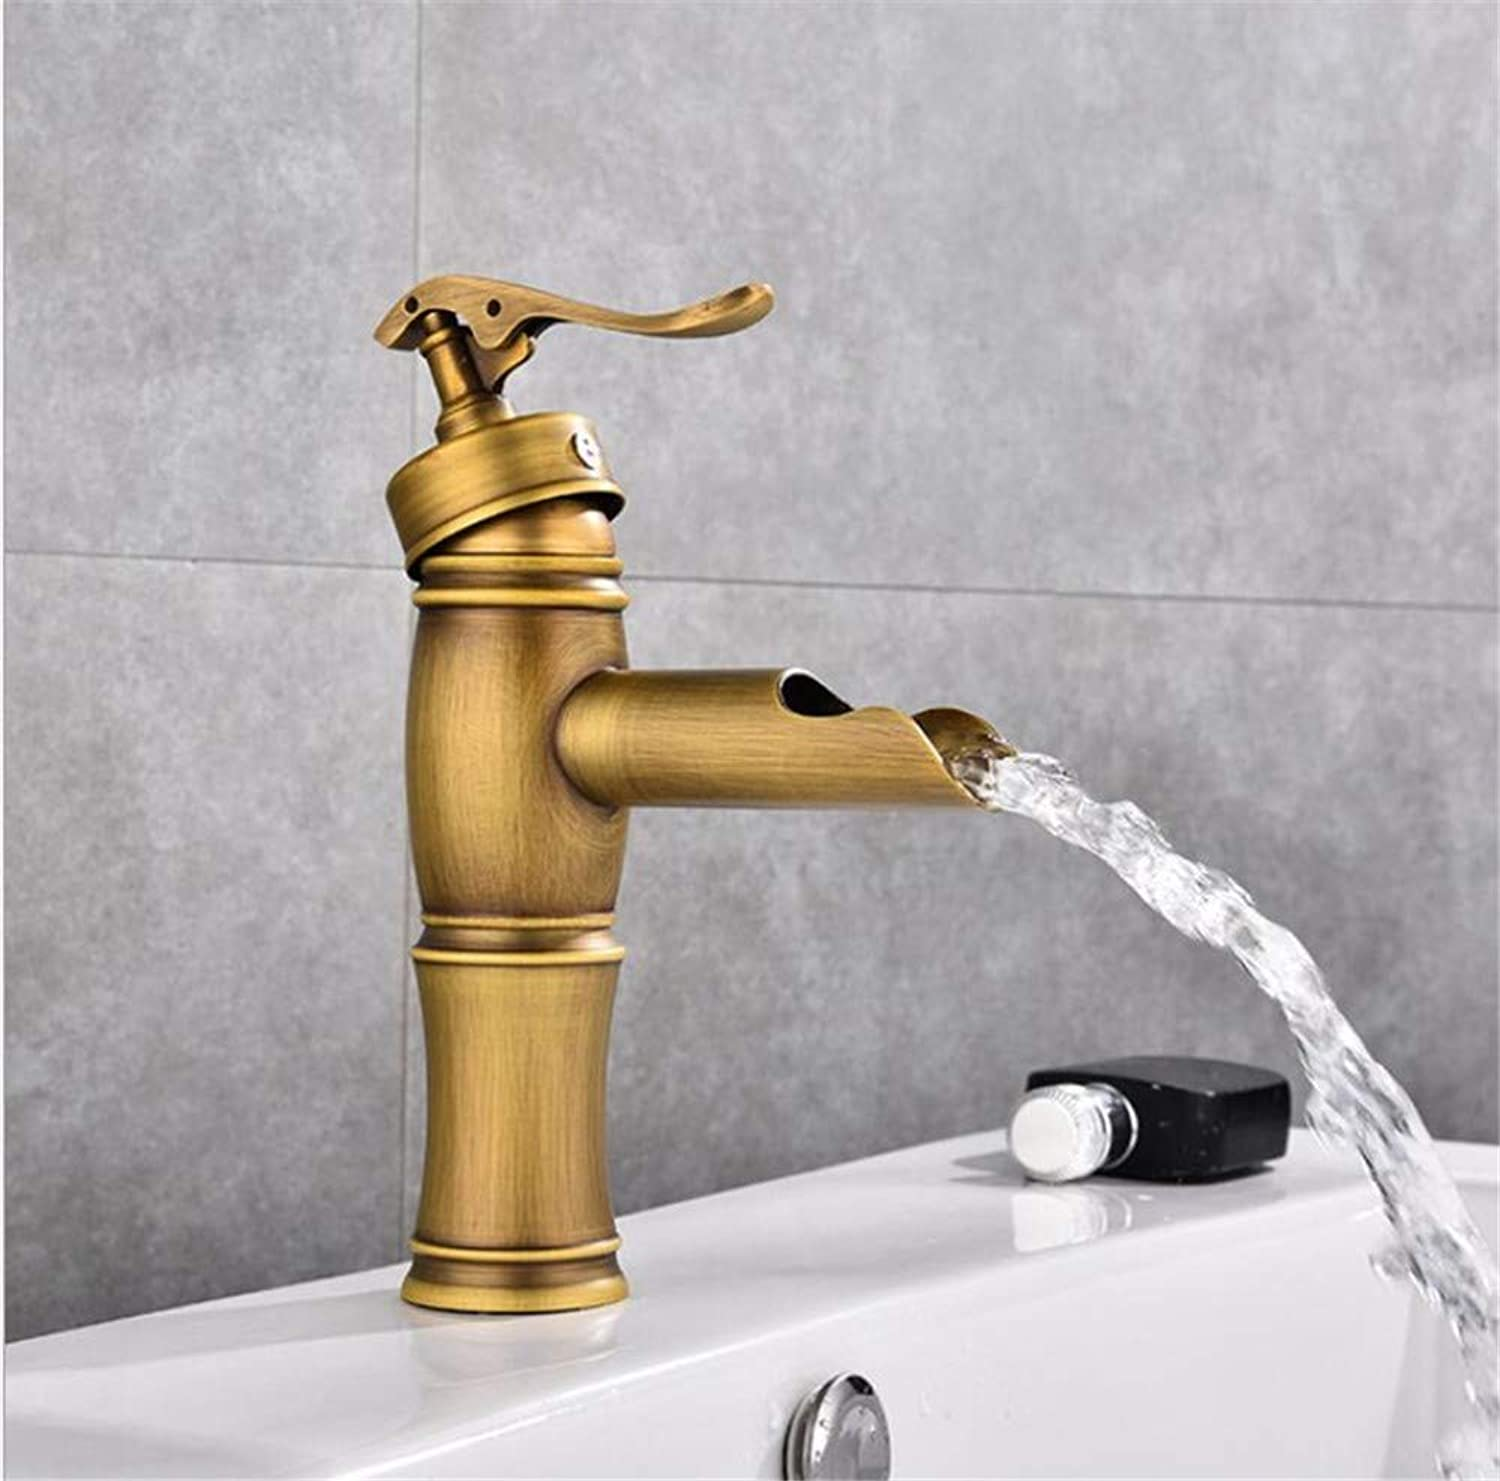 Bathroom Sink Basin Lever Mixer Tap Copper Retro Cold Hot Basin Faucet Waterfall Faucet